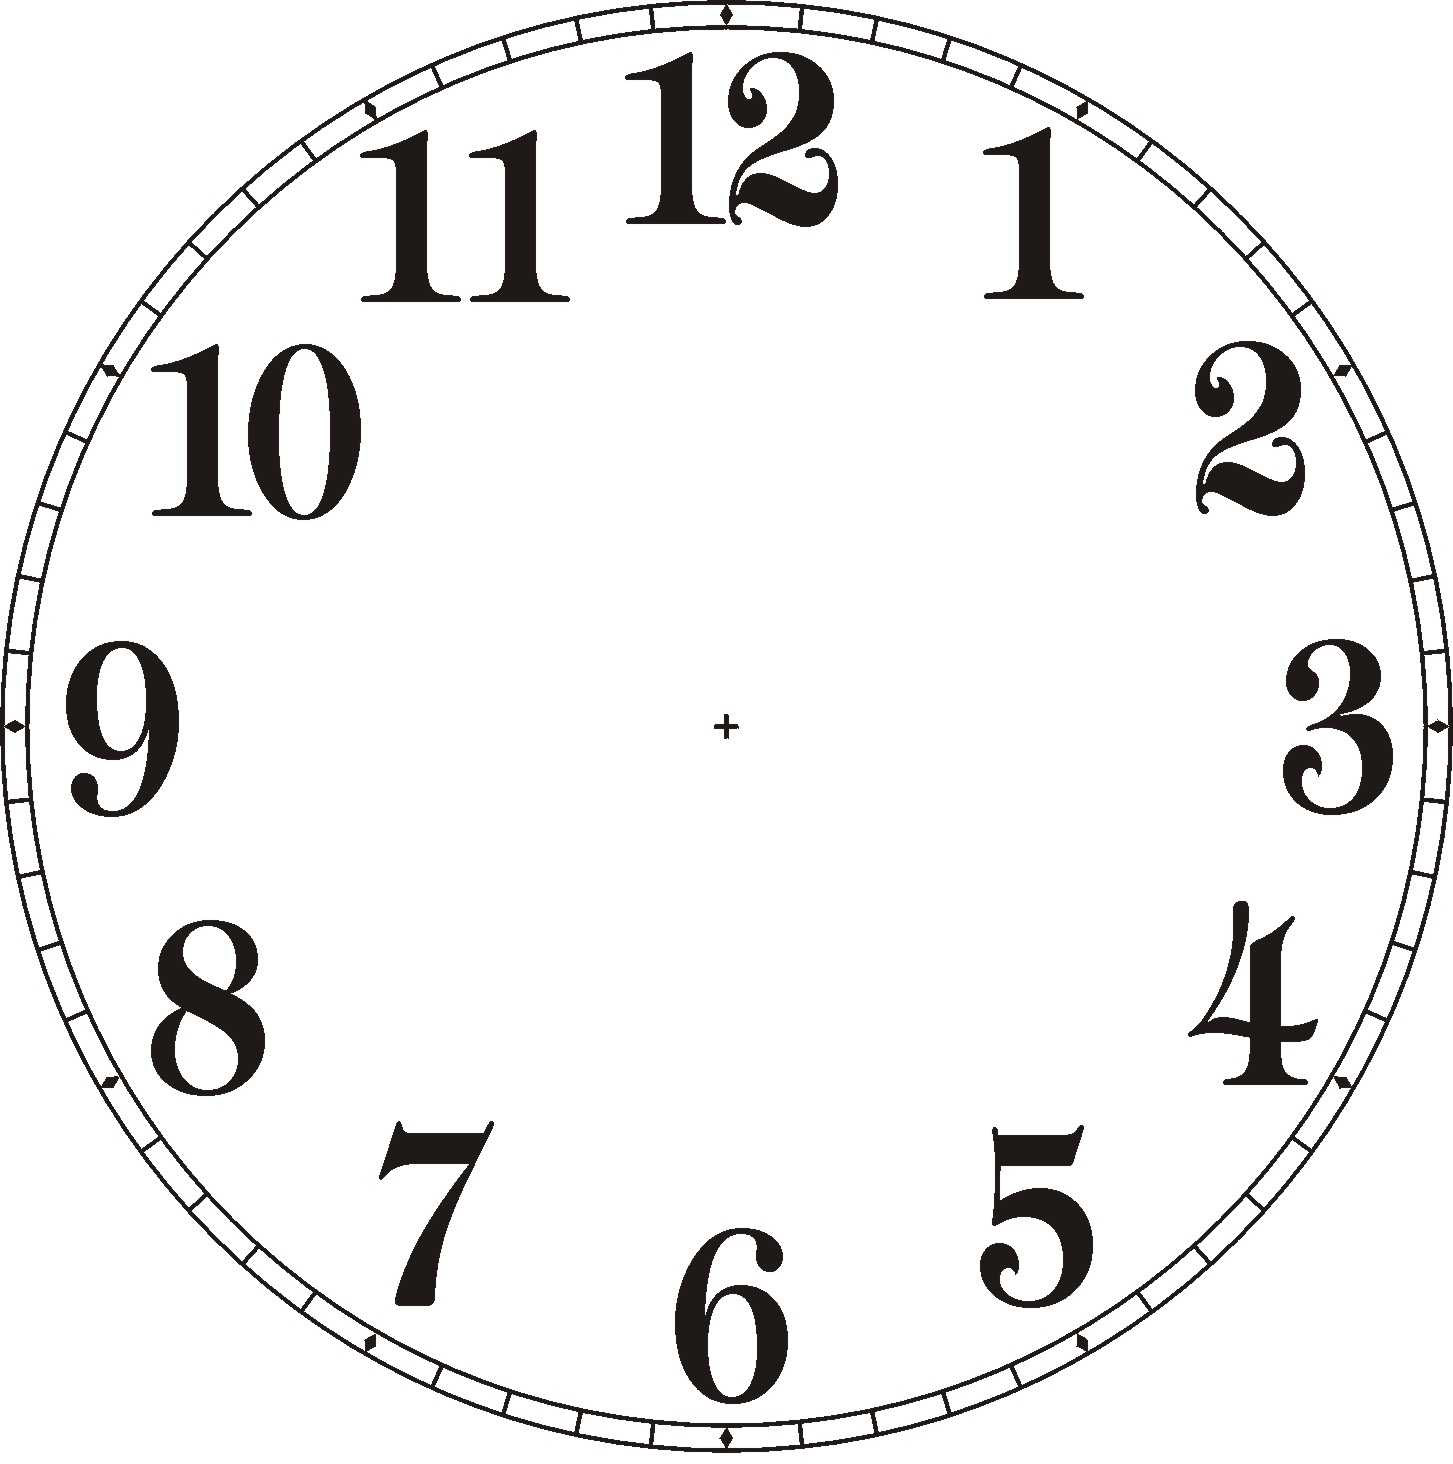 1453x1464 Clock Without Hands Free Clip Art